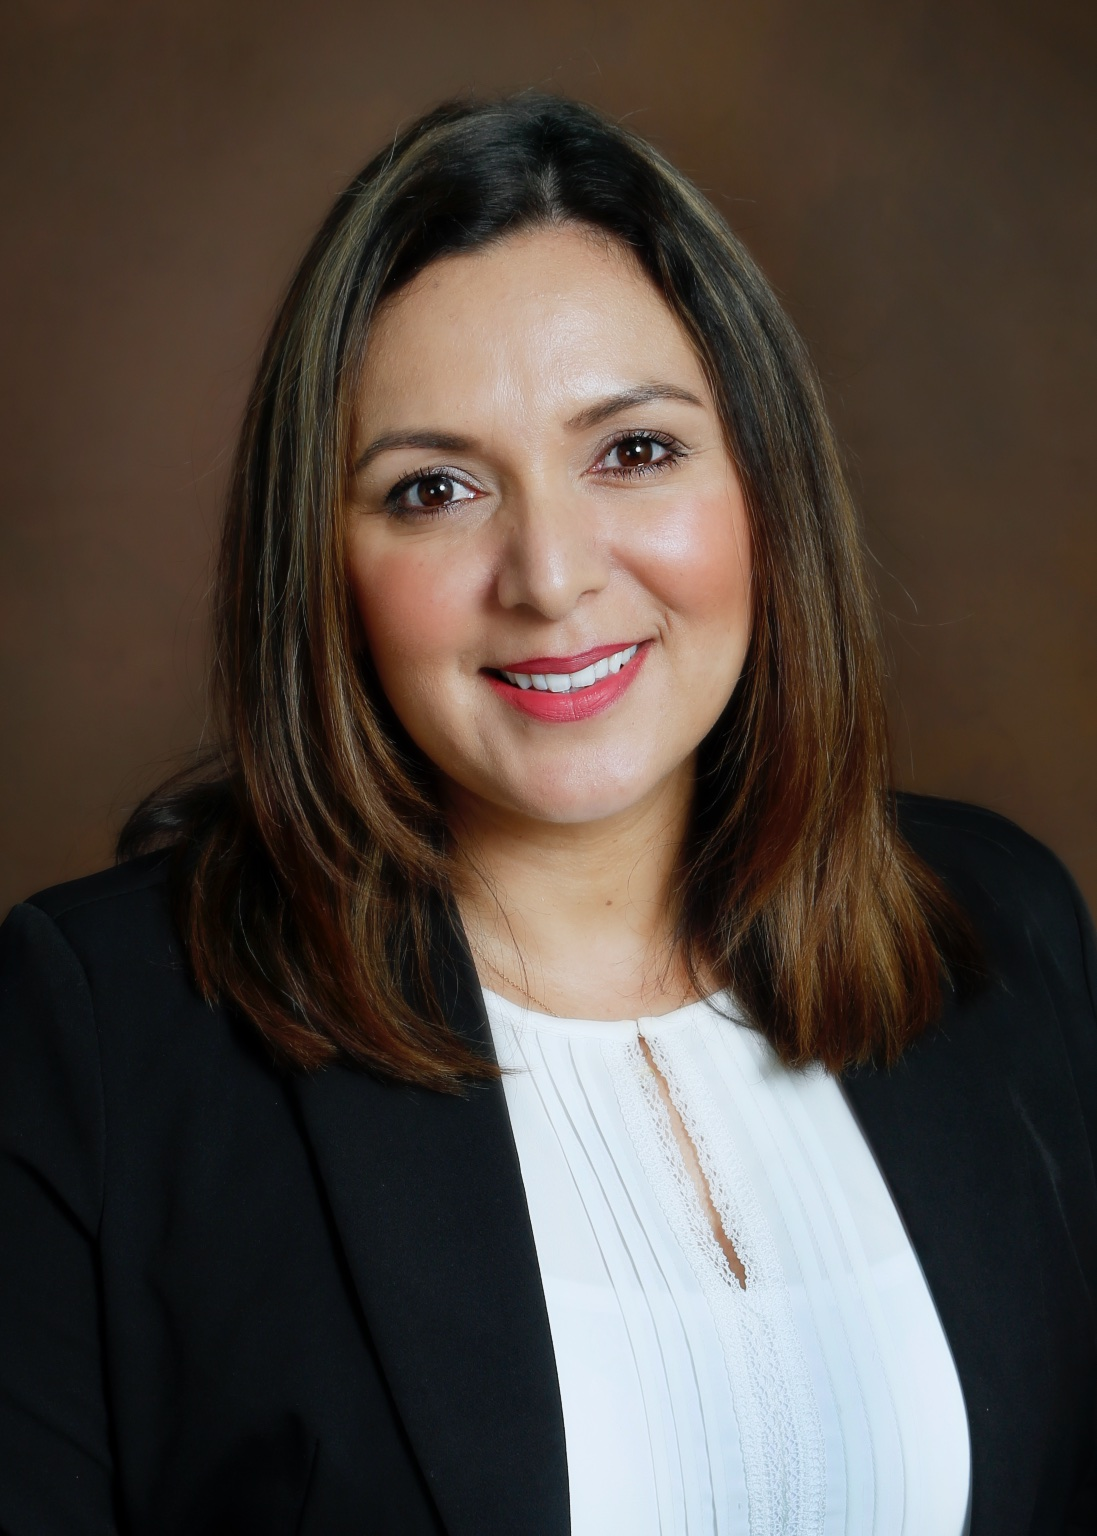 Elizabeth Chacon - Personnel Manager